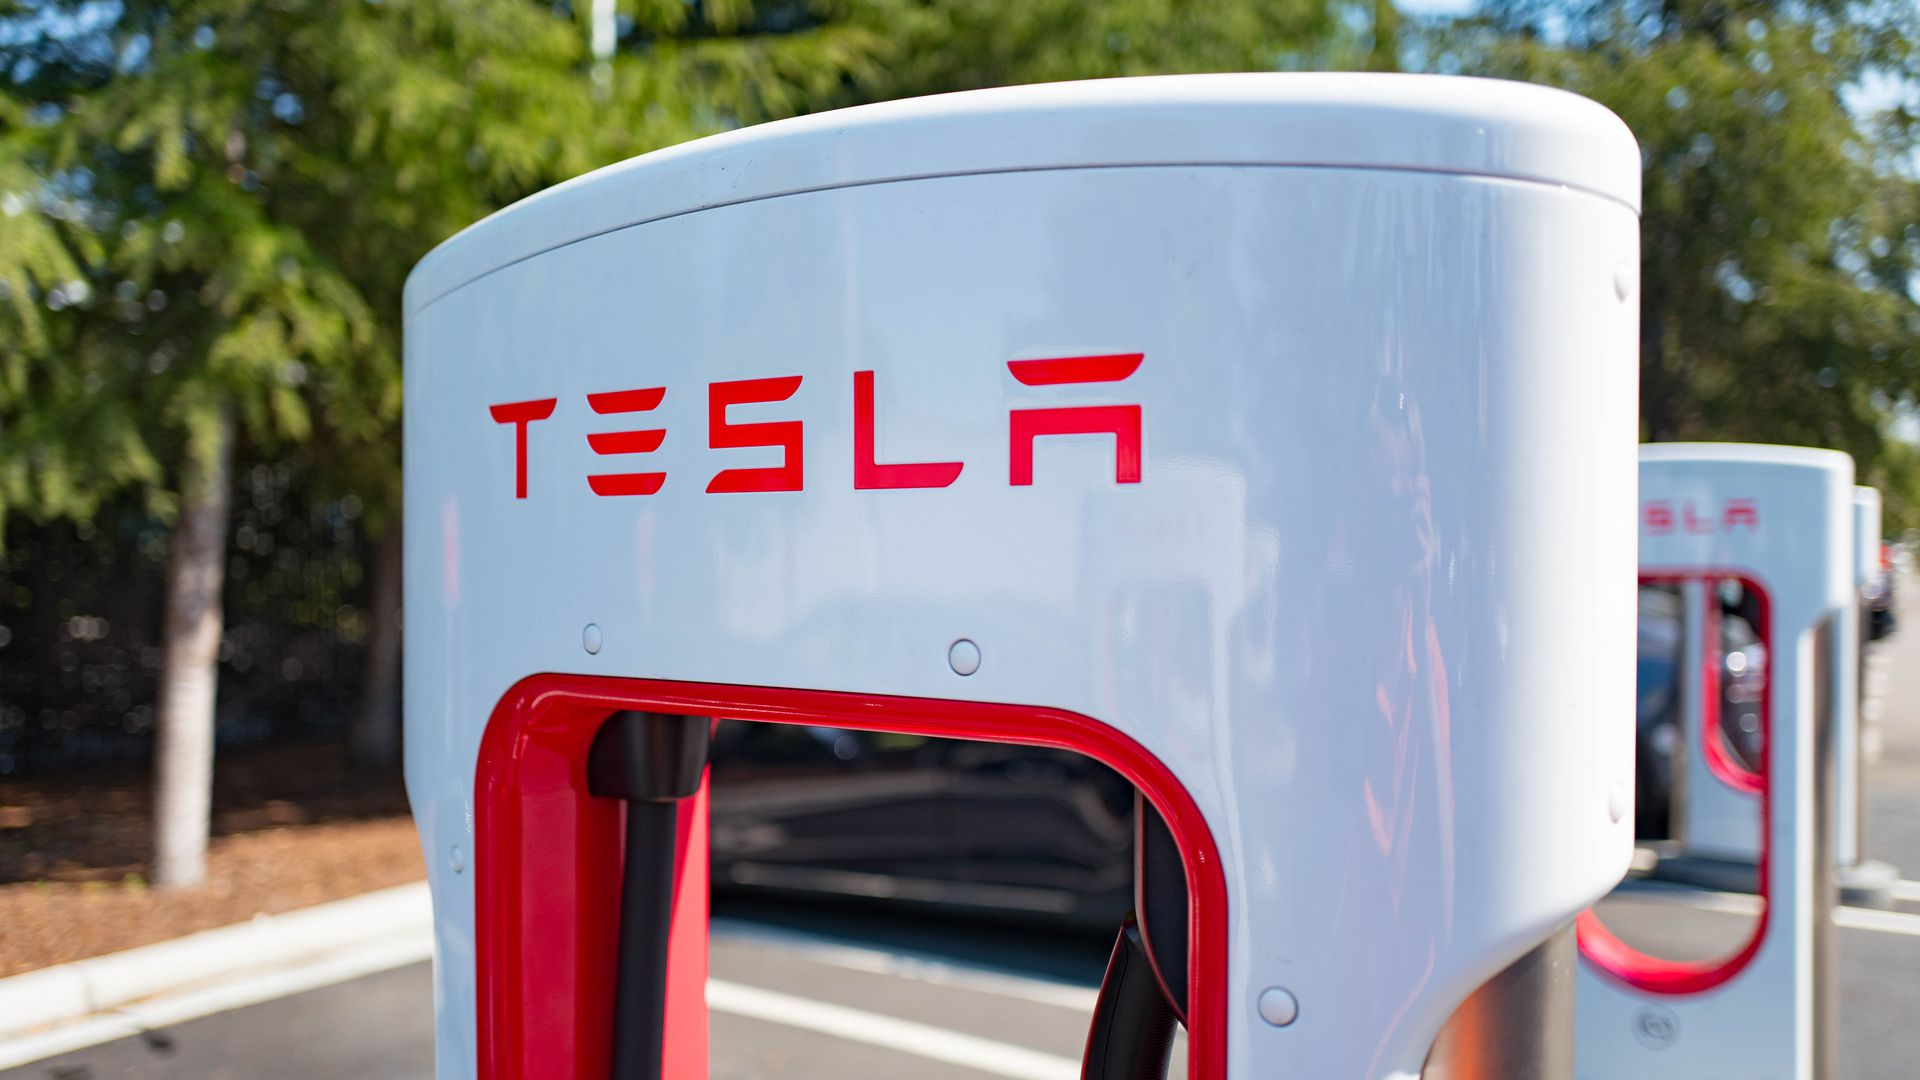 This image shows a Tesla supercharger in a parking lot.